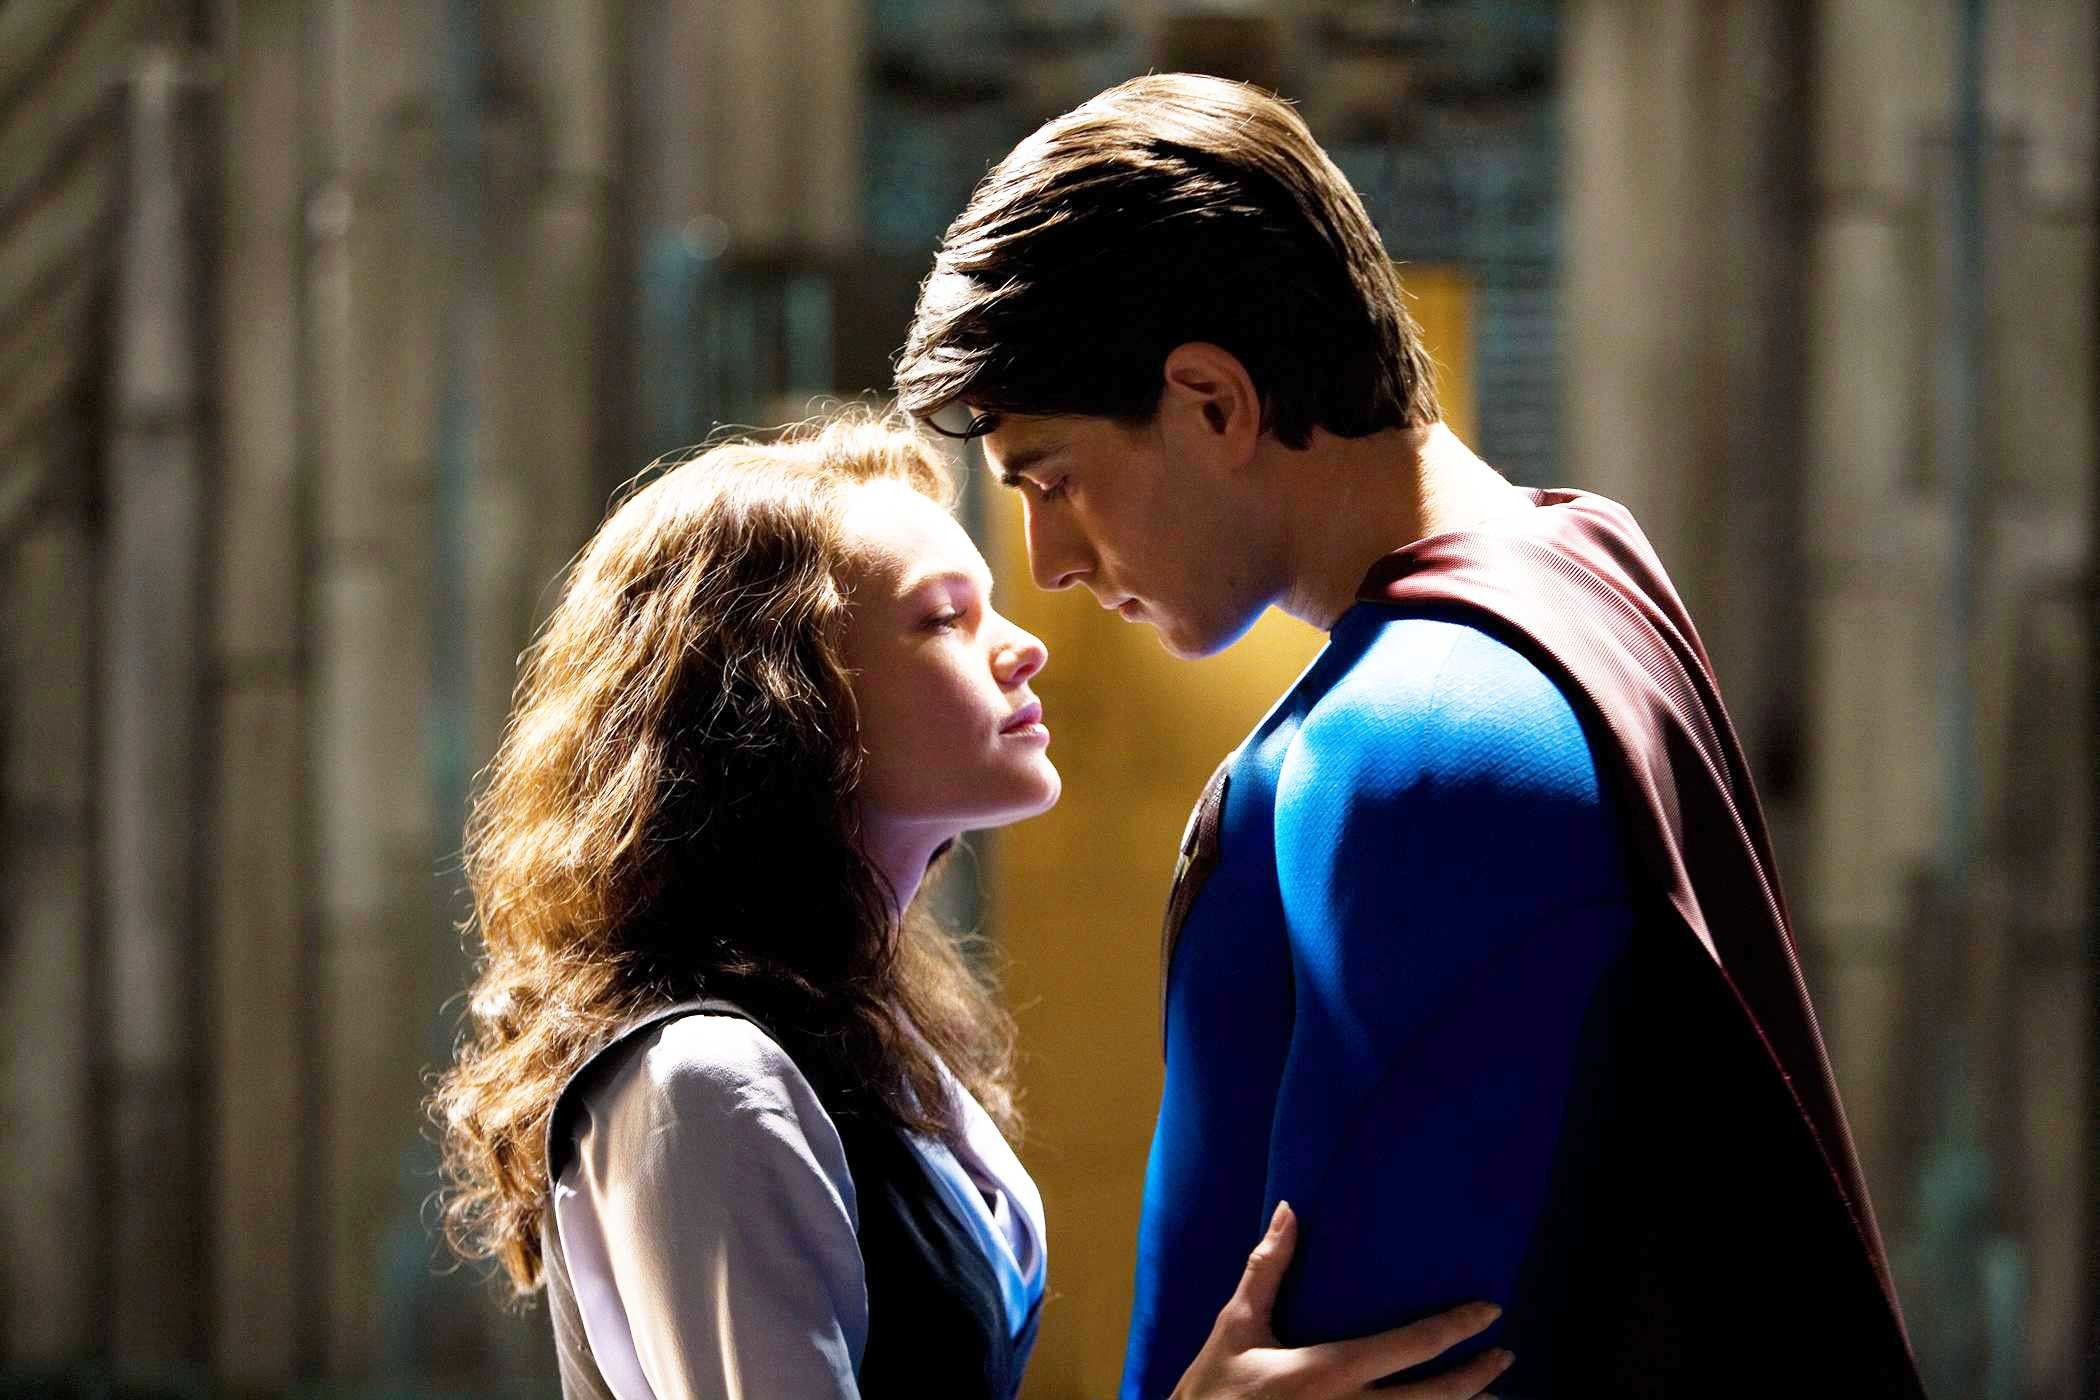 Brandon Routh Looks Back On Superman Returns And How It Changed His